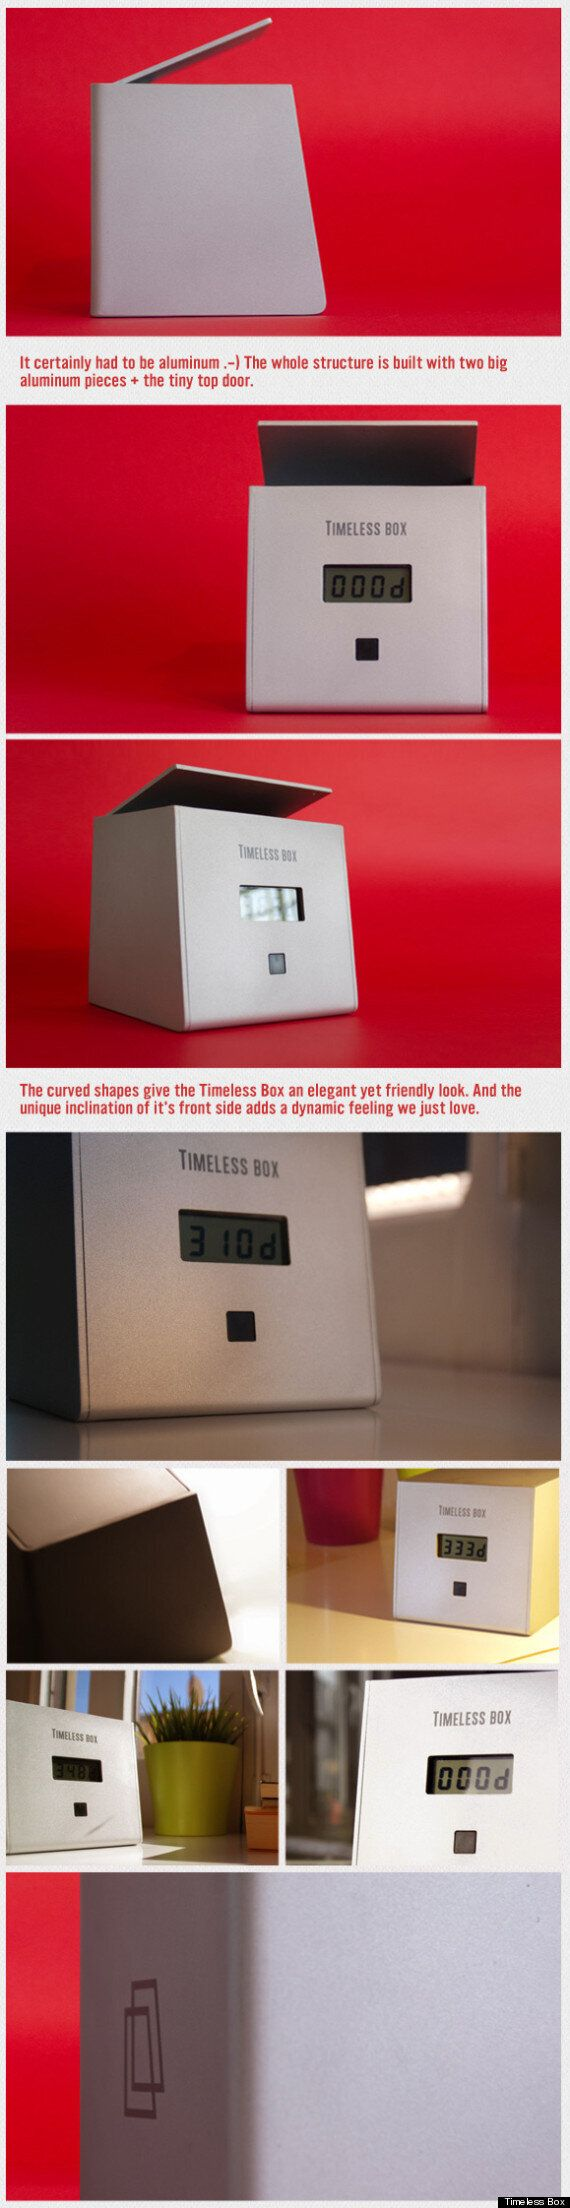 'Timeless Box' Is A Cute Way To Give Gifts (But Make Sure Your Present Is Worth The